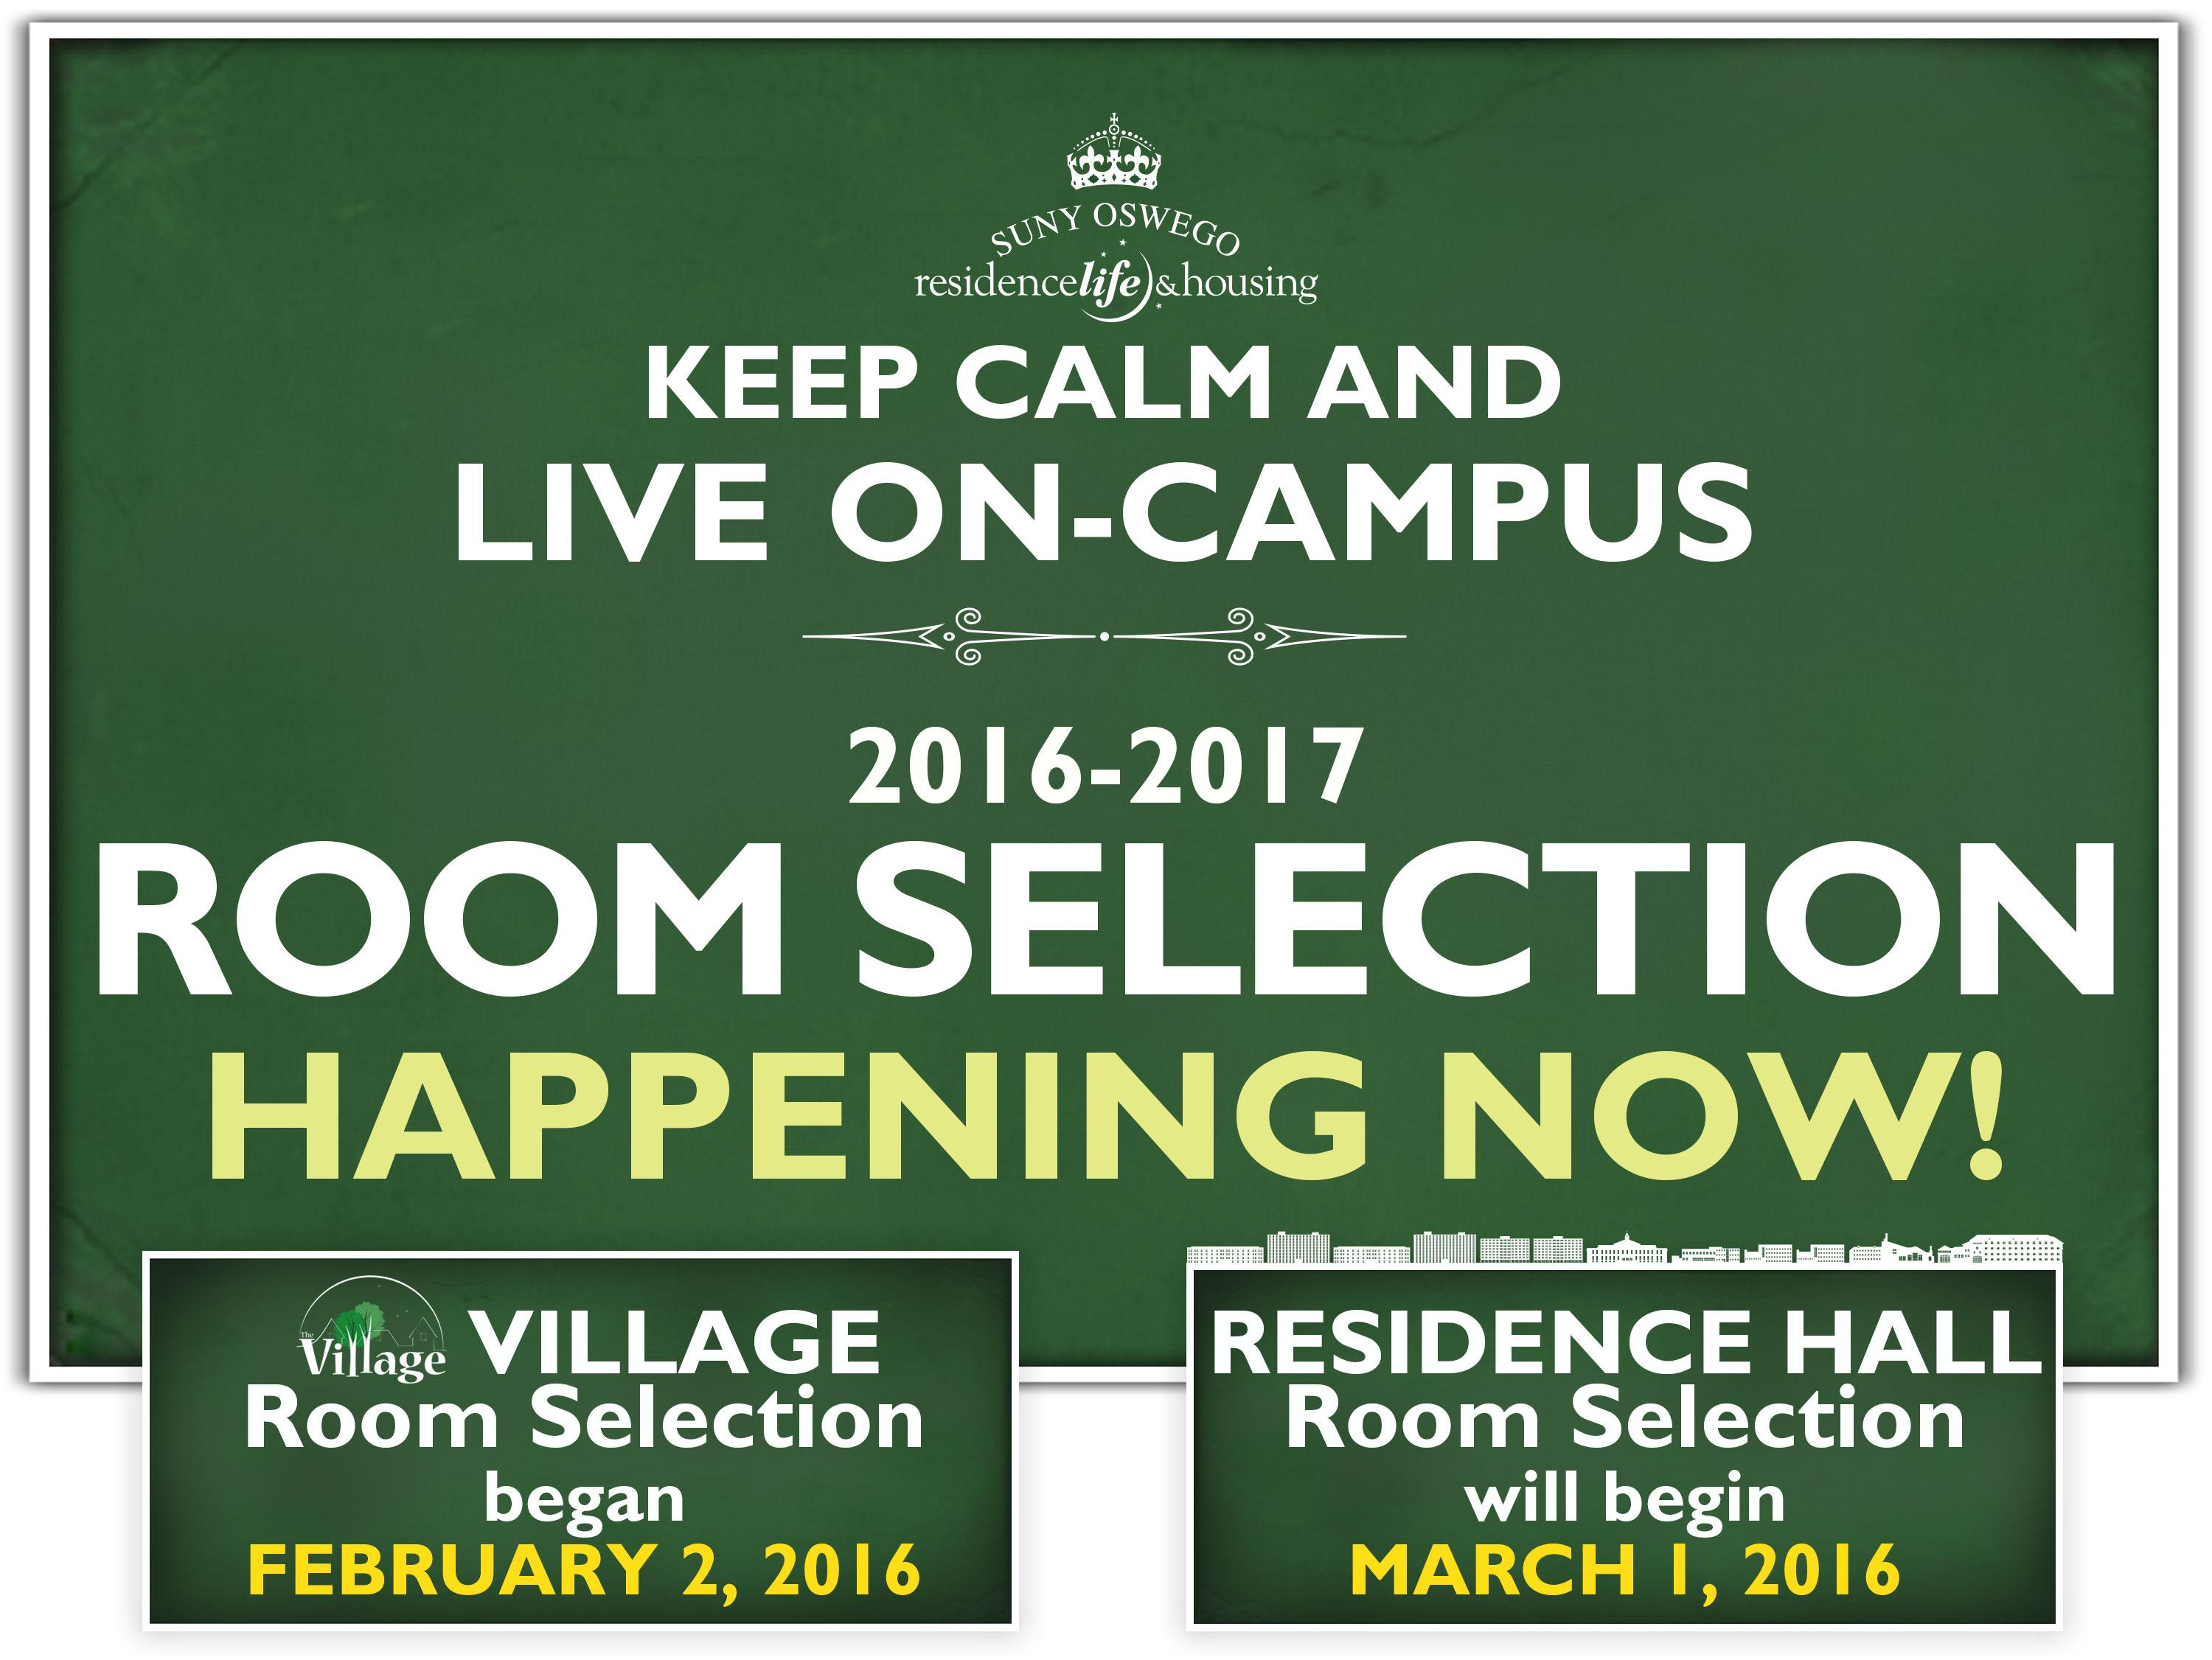 Room Selection 2016 - 2017 Happening Now! Village Room Selection began Feb. 2. Residence Hall Room Selection will begin March 1.